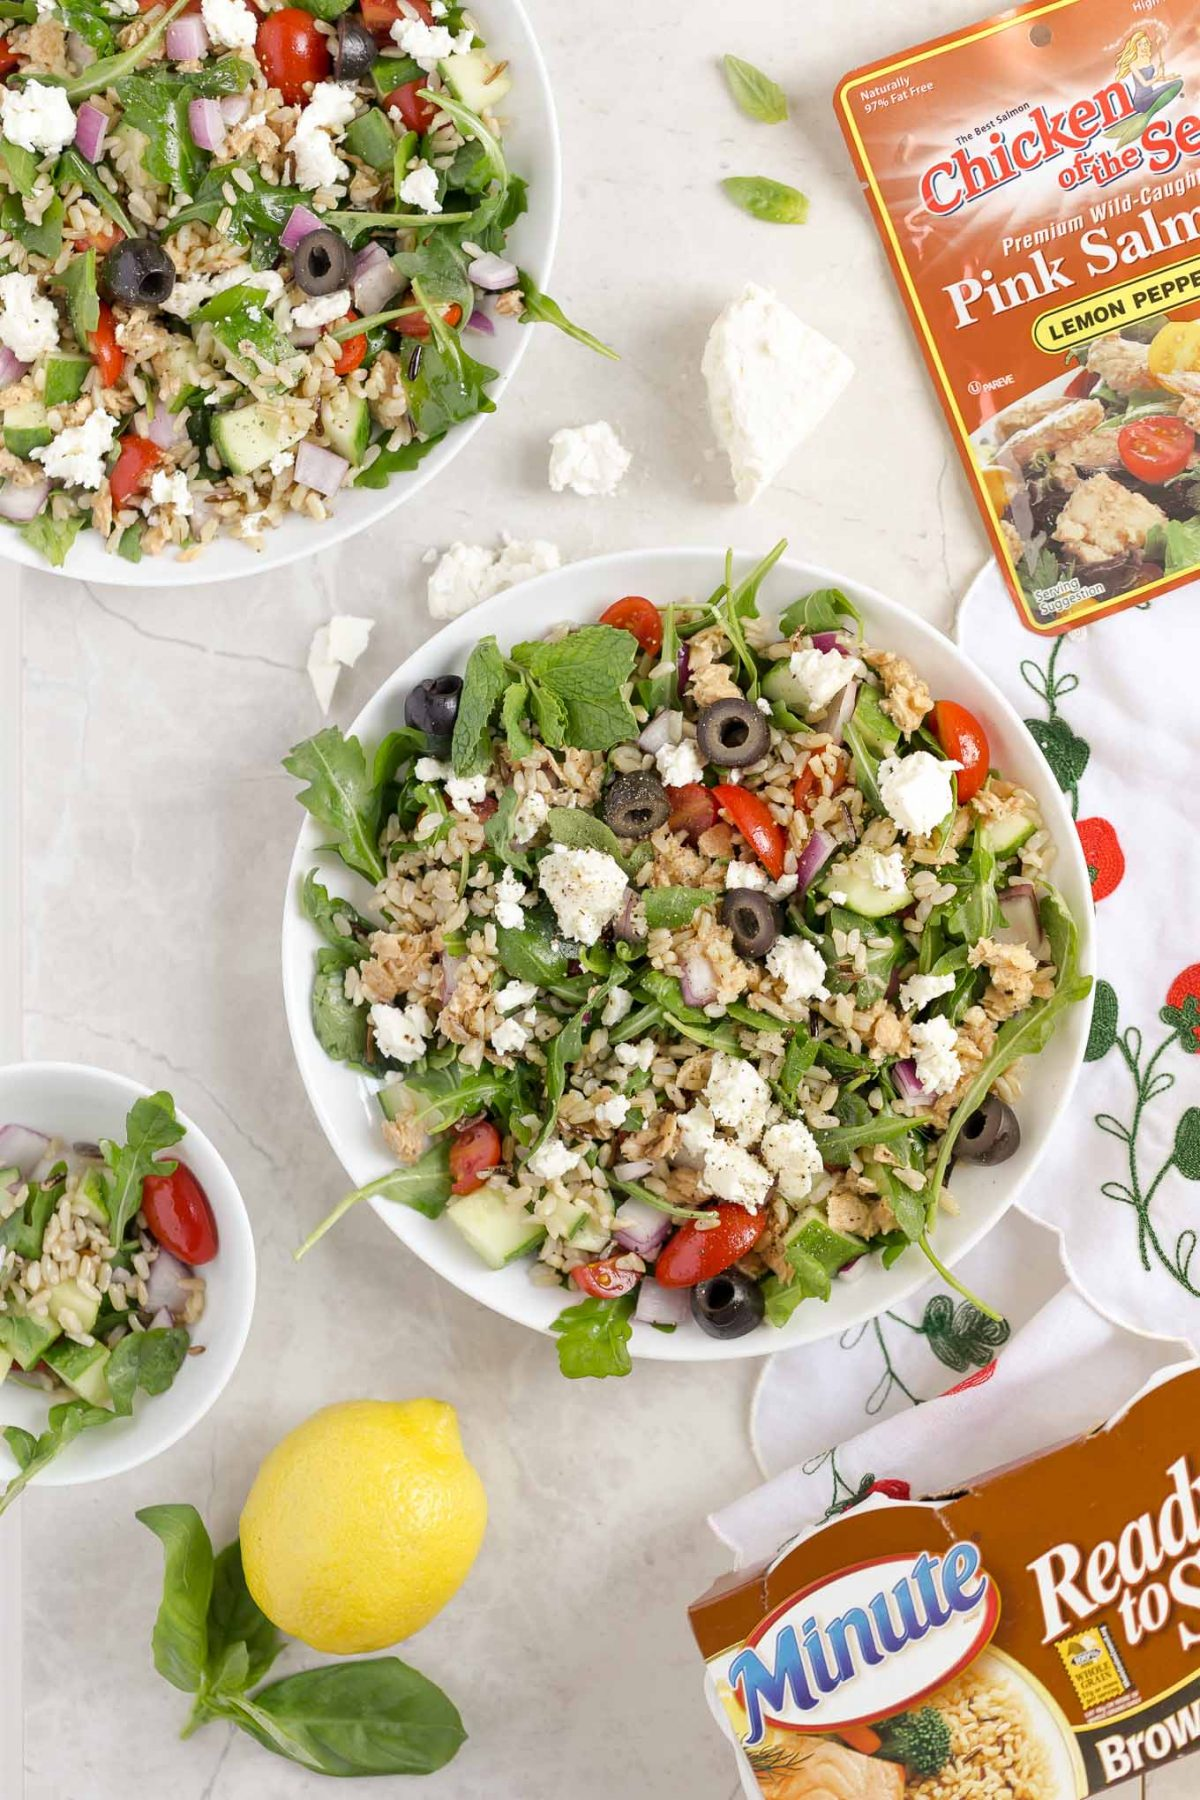 Greek Whole Grain Salad with Lemon Salmon and Feta - A delicious whole grain salad with Greek flavors like feta, olives, lemon pepper salmon, and brown and wild rice! It's quick, easy, and filling!